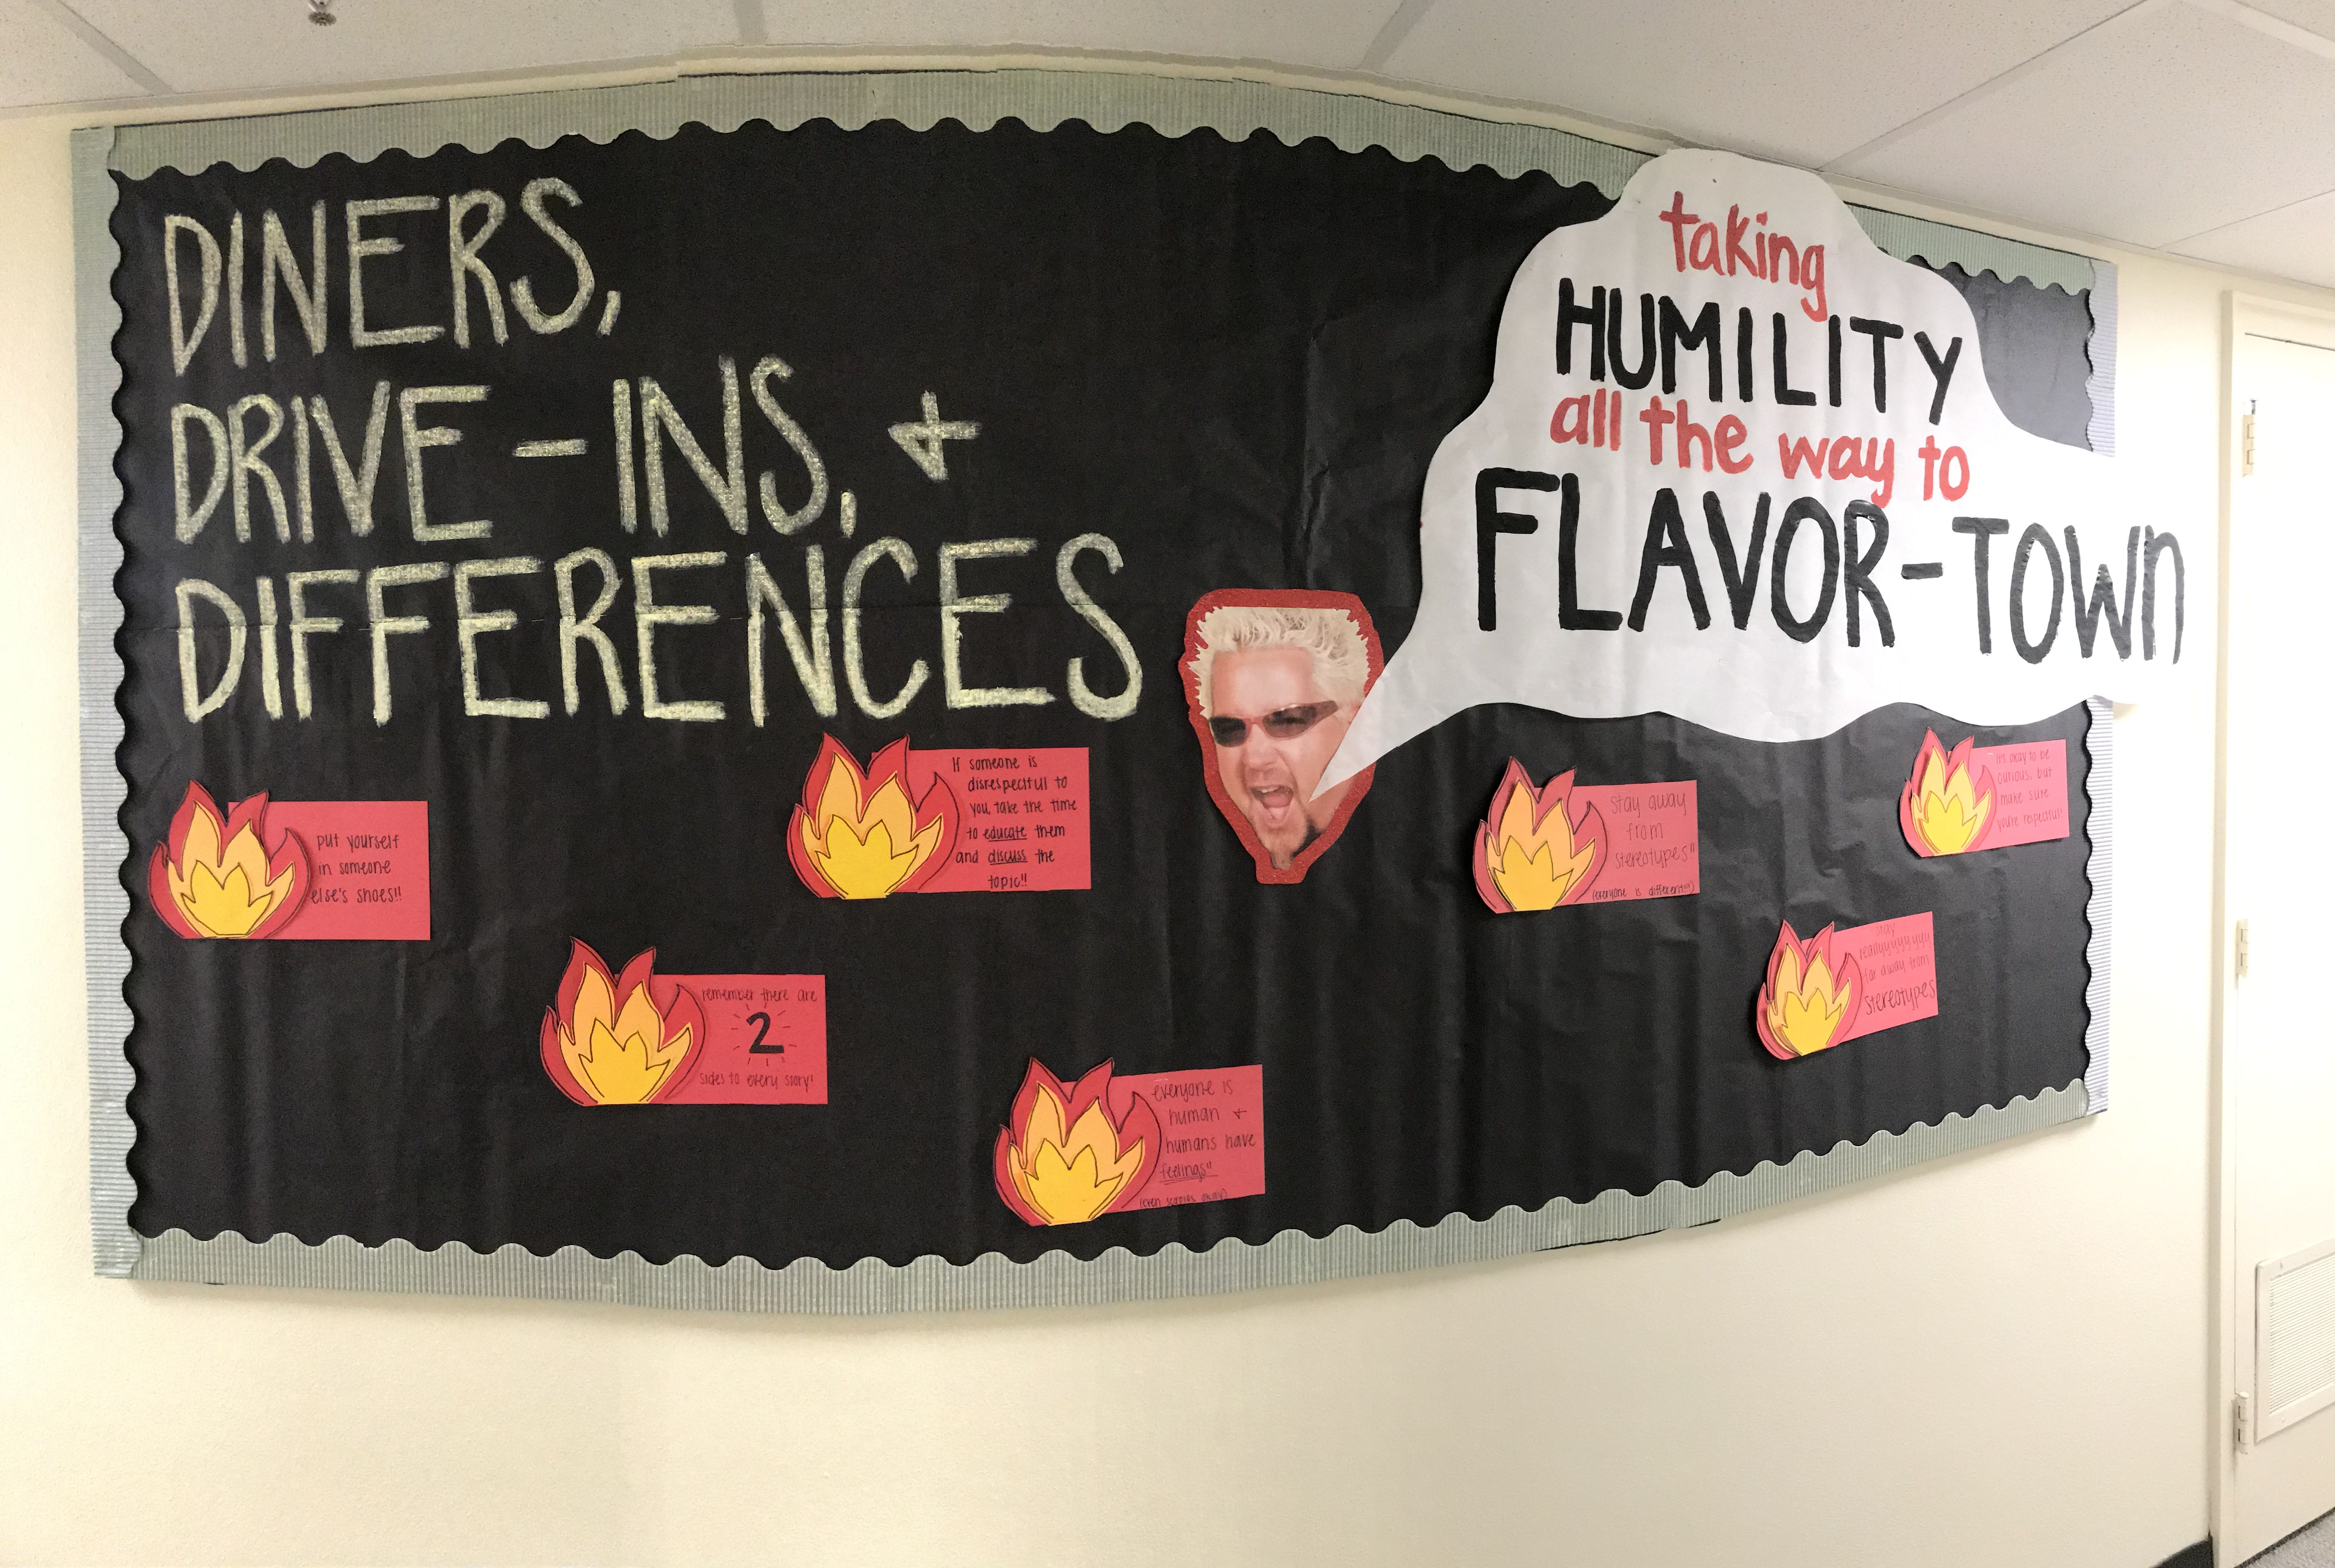 I know she's a little messy but this is a fun funny but informative RA bulletin board for cultural diversity #rabulletinboards